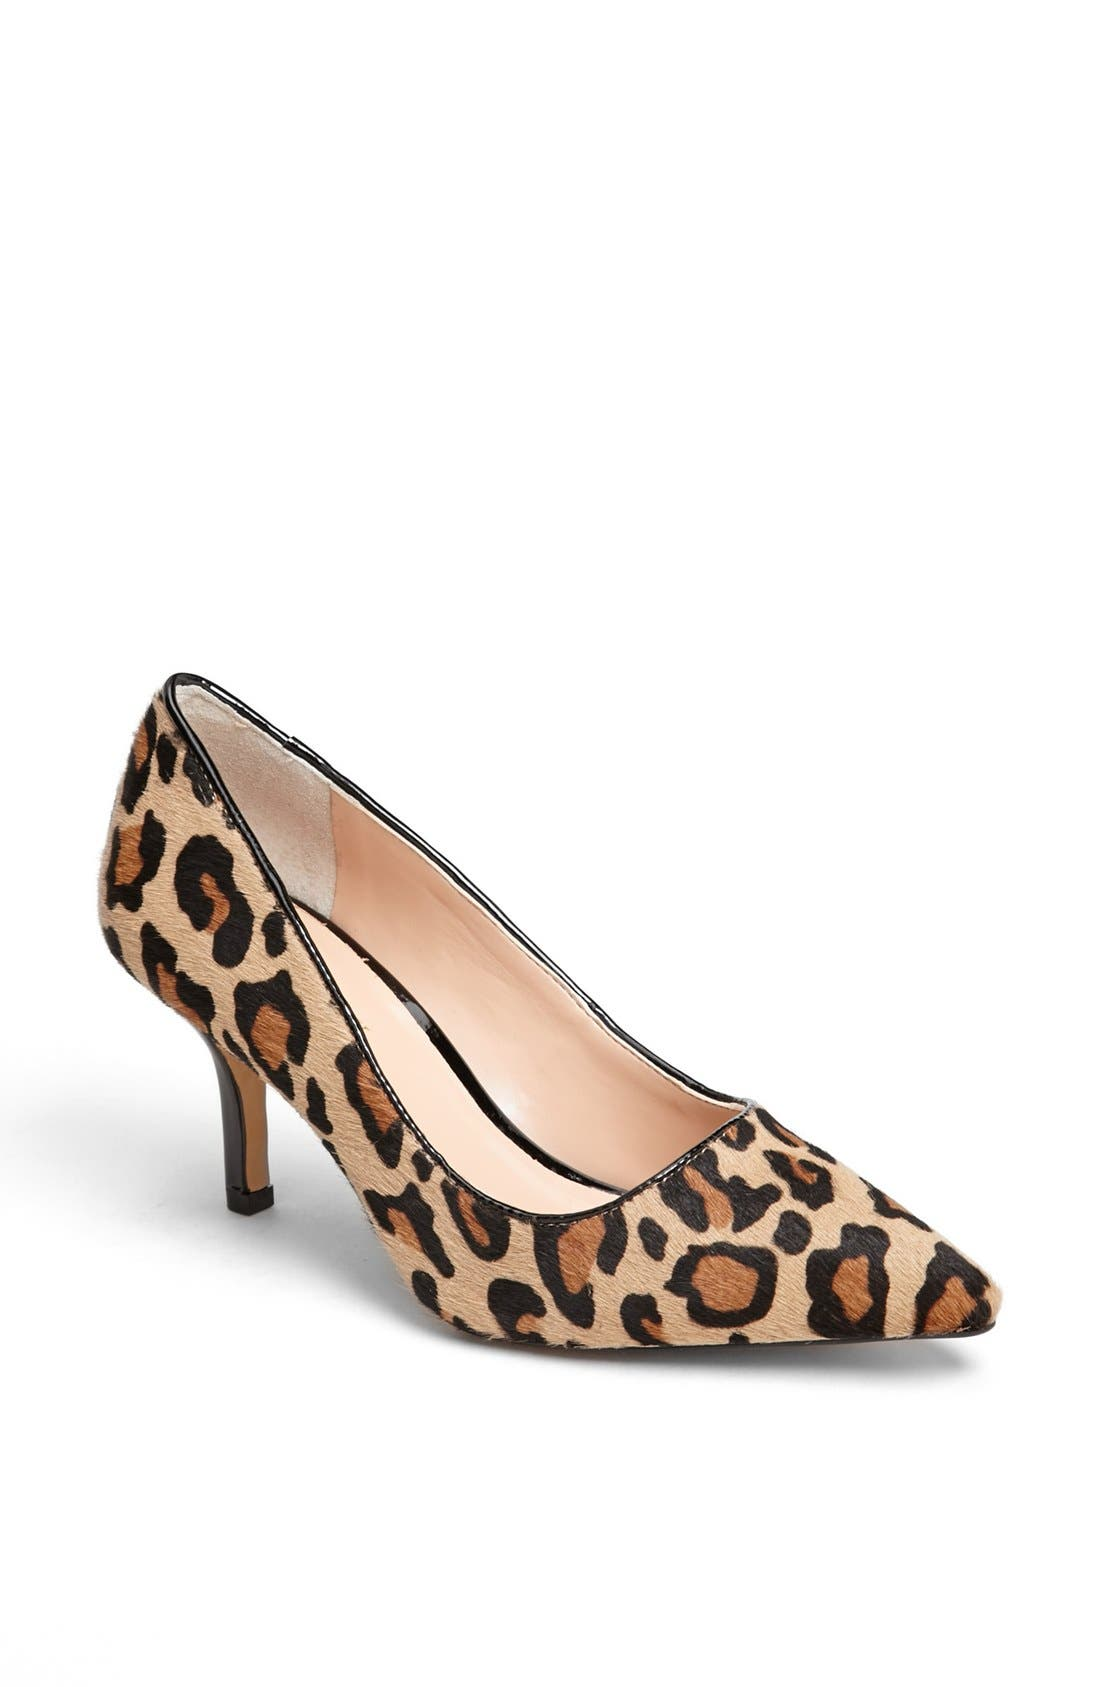 Alternate Image 1 Selected - Sole Society 'France' Pump